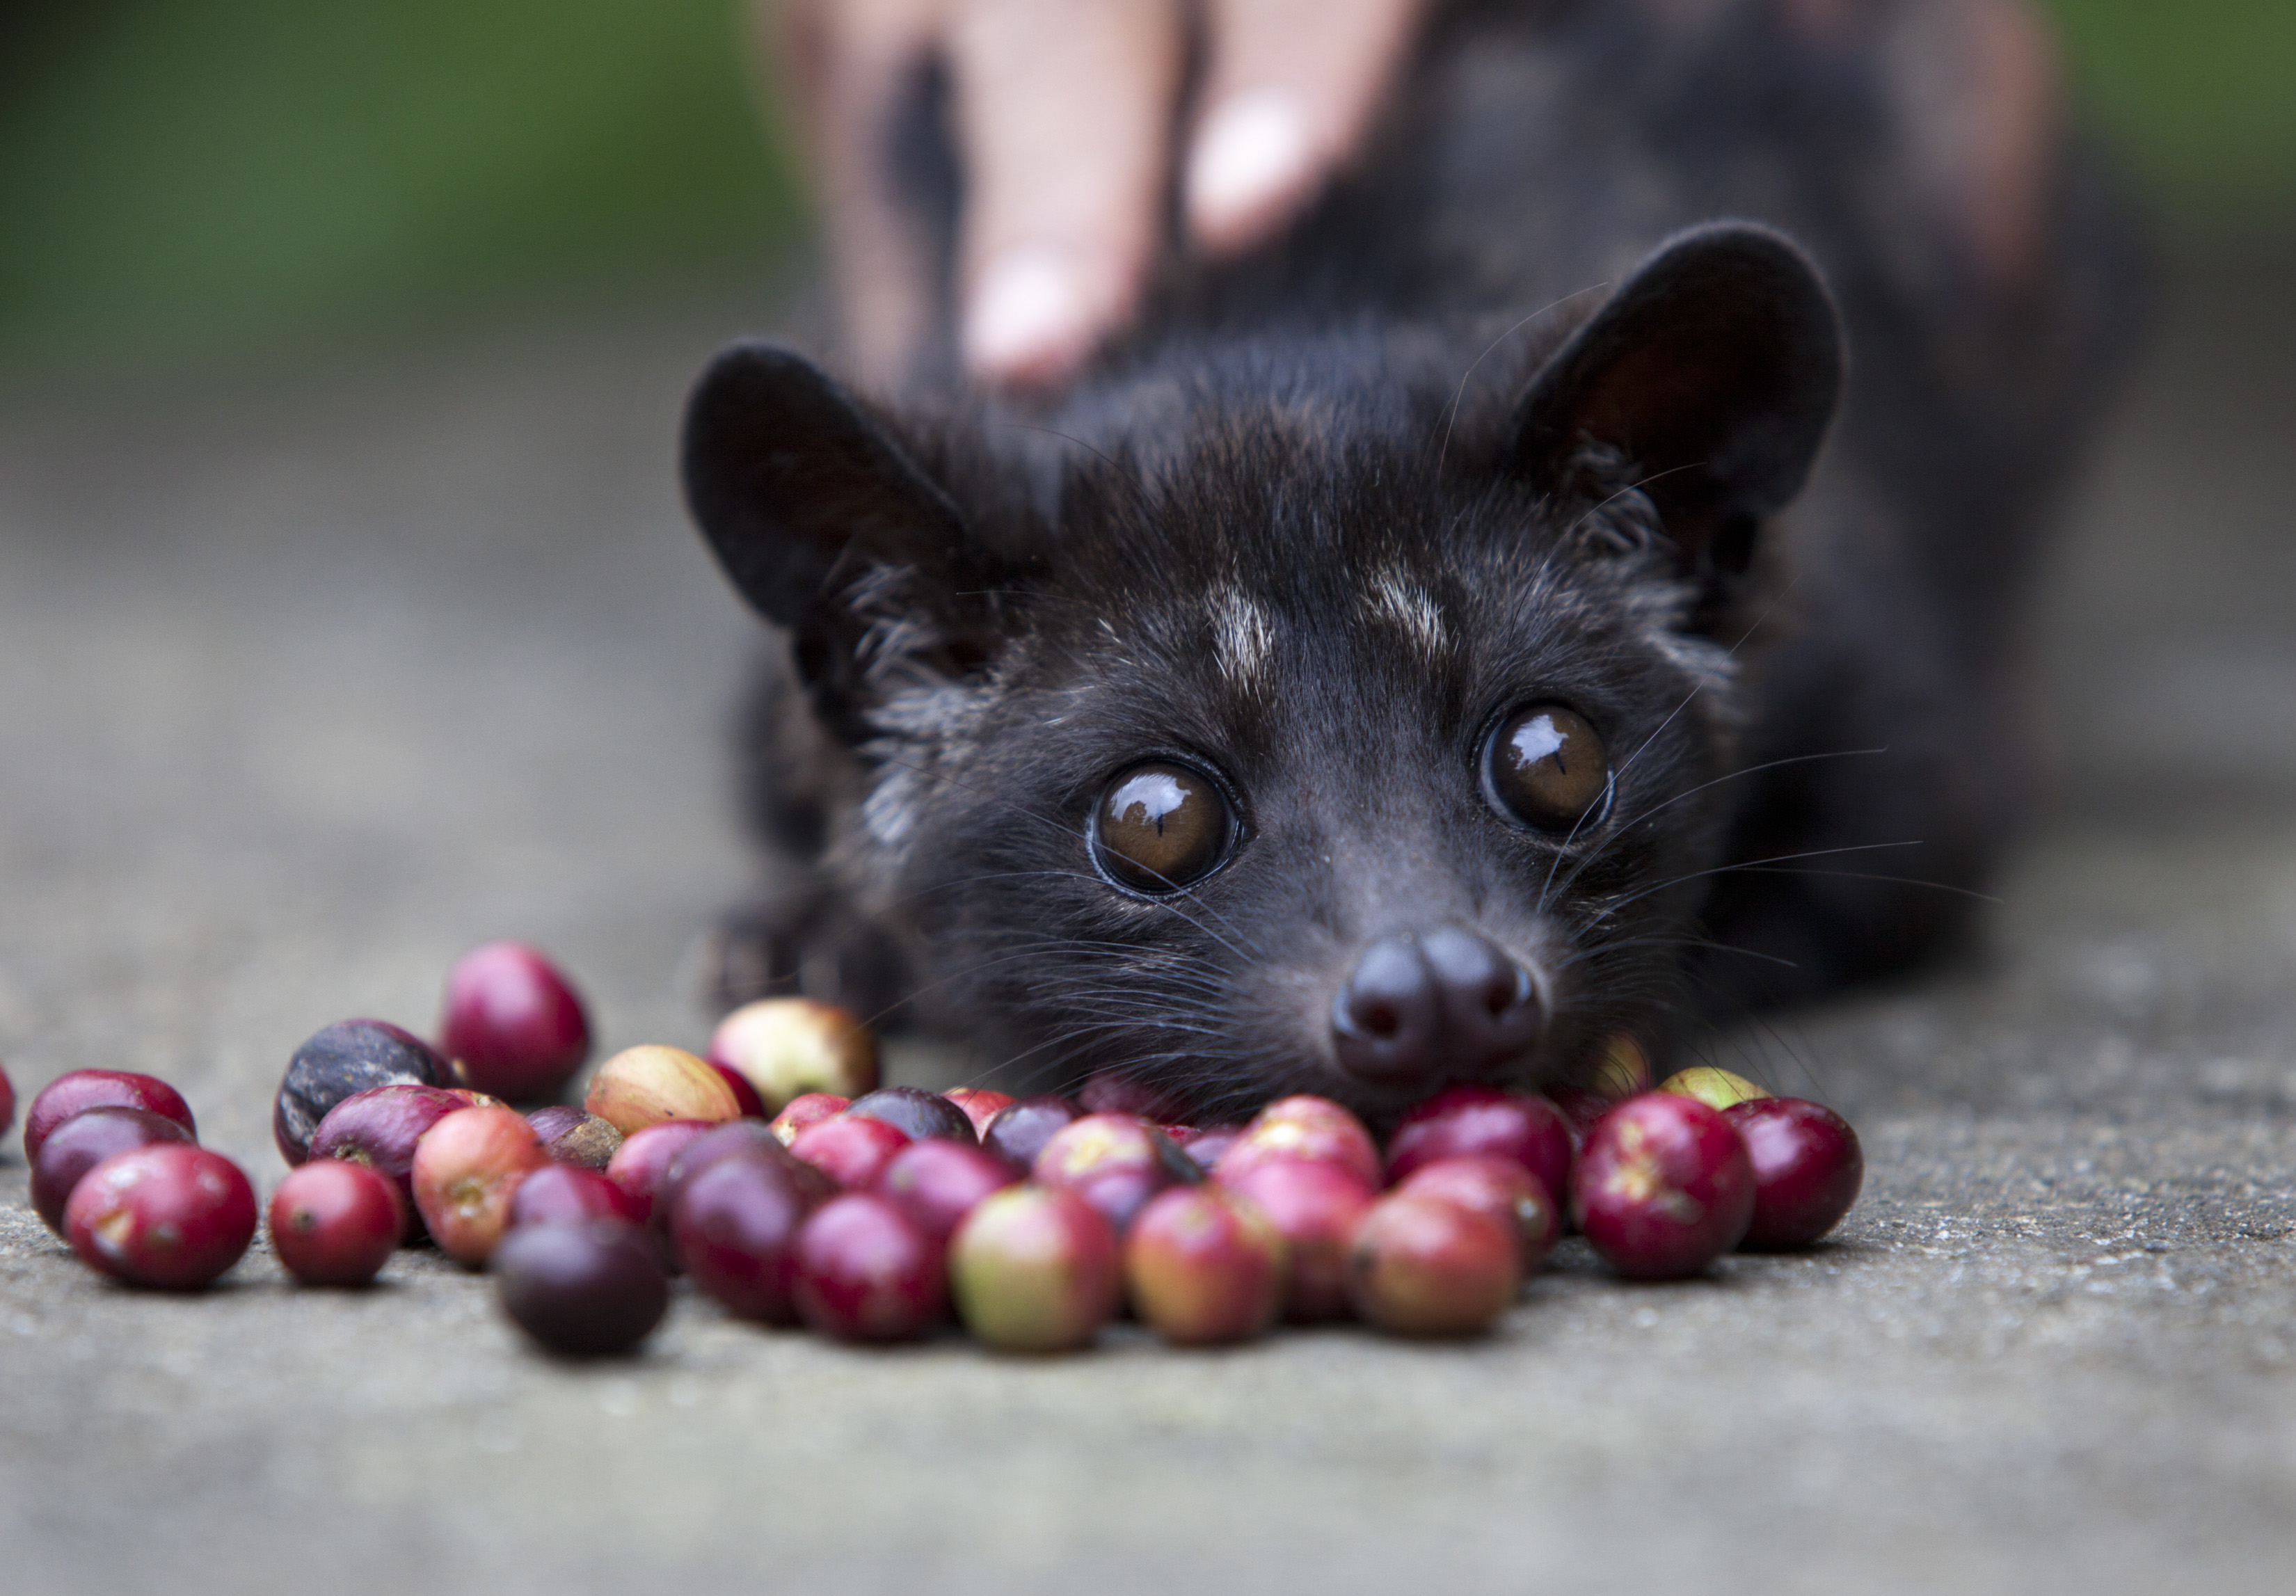 TAPAKSIRING, BALI, INDONESIA -JANUARY 20: A four month old Luwak is tempted by some red coffee beans at the BAS Coffee plantation January 20, 2011 in Tapaksiring, Bali, Indonesia. The Luwak coffee is known as the most expensive coffee in the world because of the way the beans are processed and the limited supply. The Luwak is an Asian palm civet, which looks like a cross between a cat and a ferret. The civet climbs the coffee trees to find the best berries, eats them, and eventually the coffee beans come out in its stools as a complete bean. Coffee farmers then harvest the civet droppings and take the beans to a processing plant. Luwak coffee is produced mainly on the islands of Sumatra, Java, Bali and Sulawesi in the Indonesian Archipelago, and also in the Philippines. (Photo by Paula Bronstein /Getty Images)